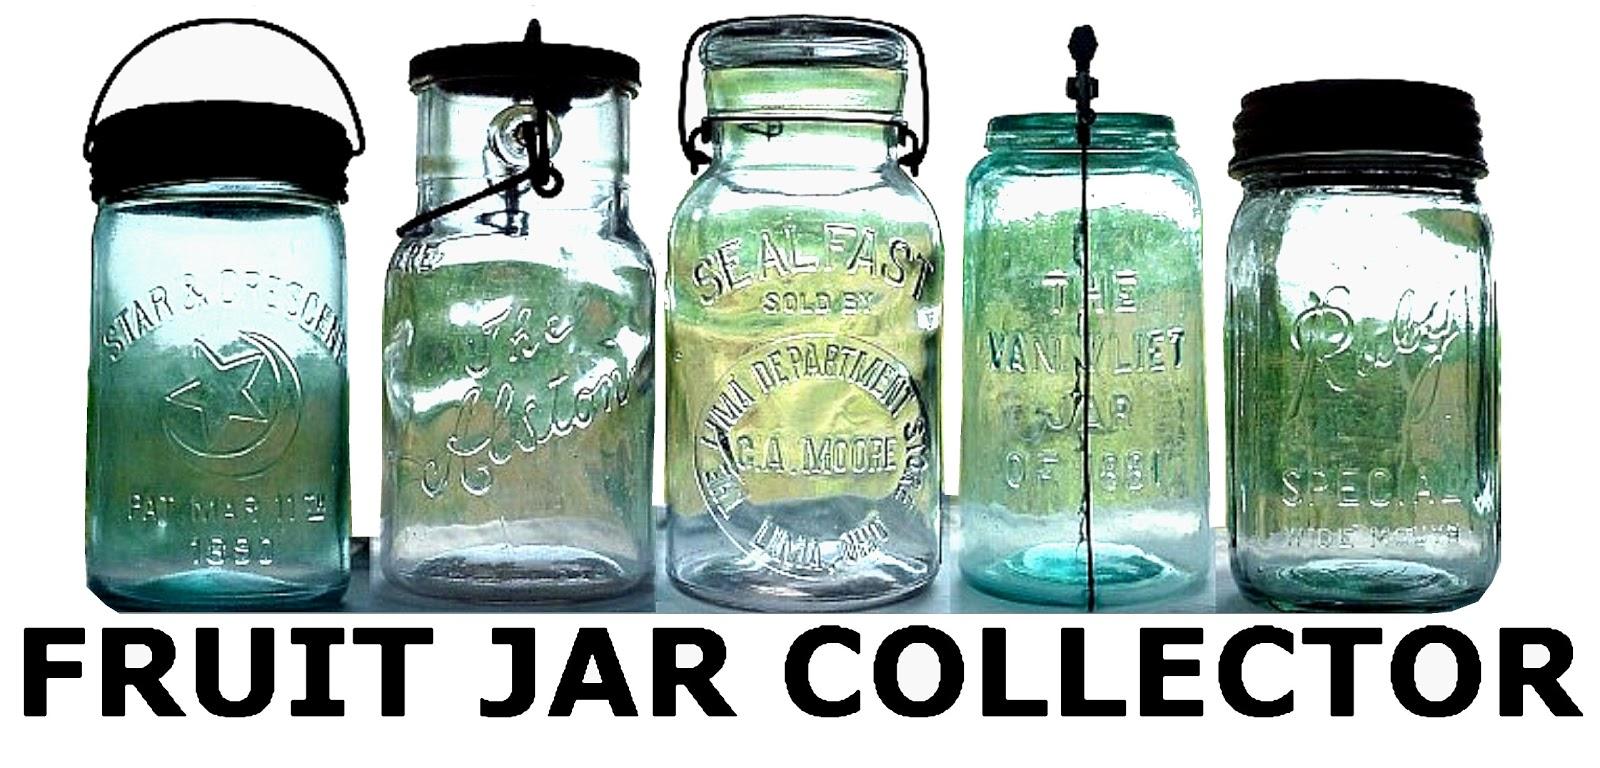 fruit jars pacific glass works root and hollieanna color runs and info